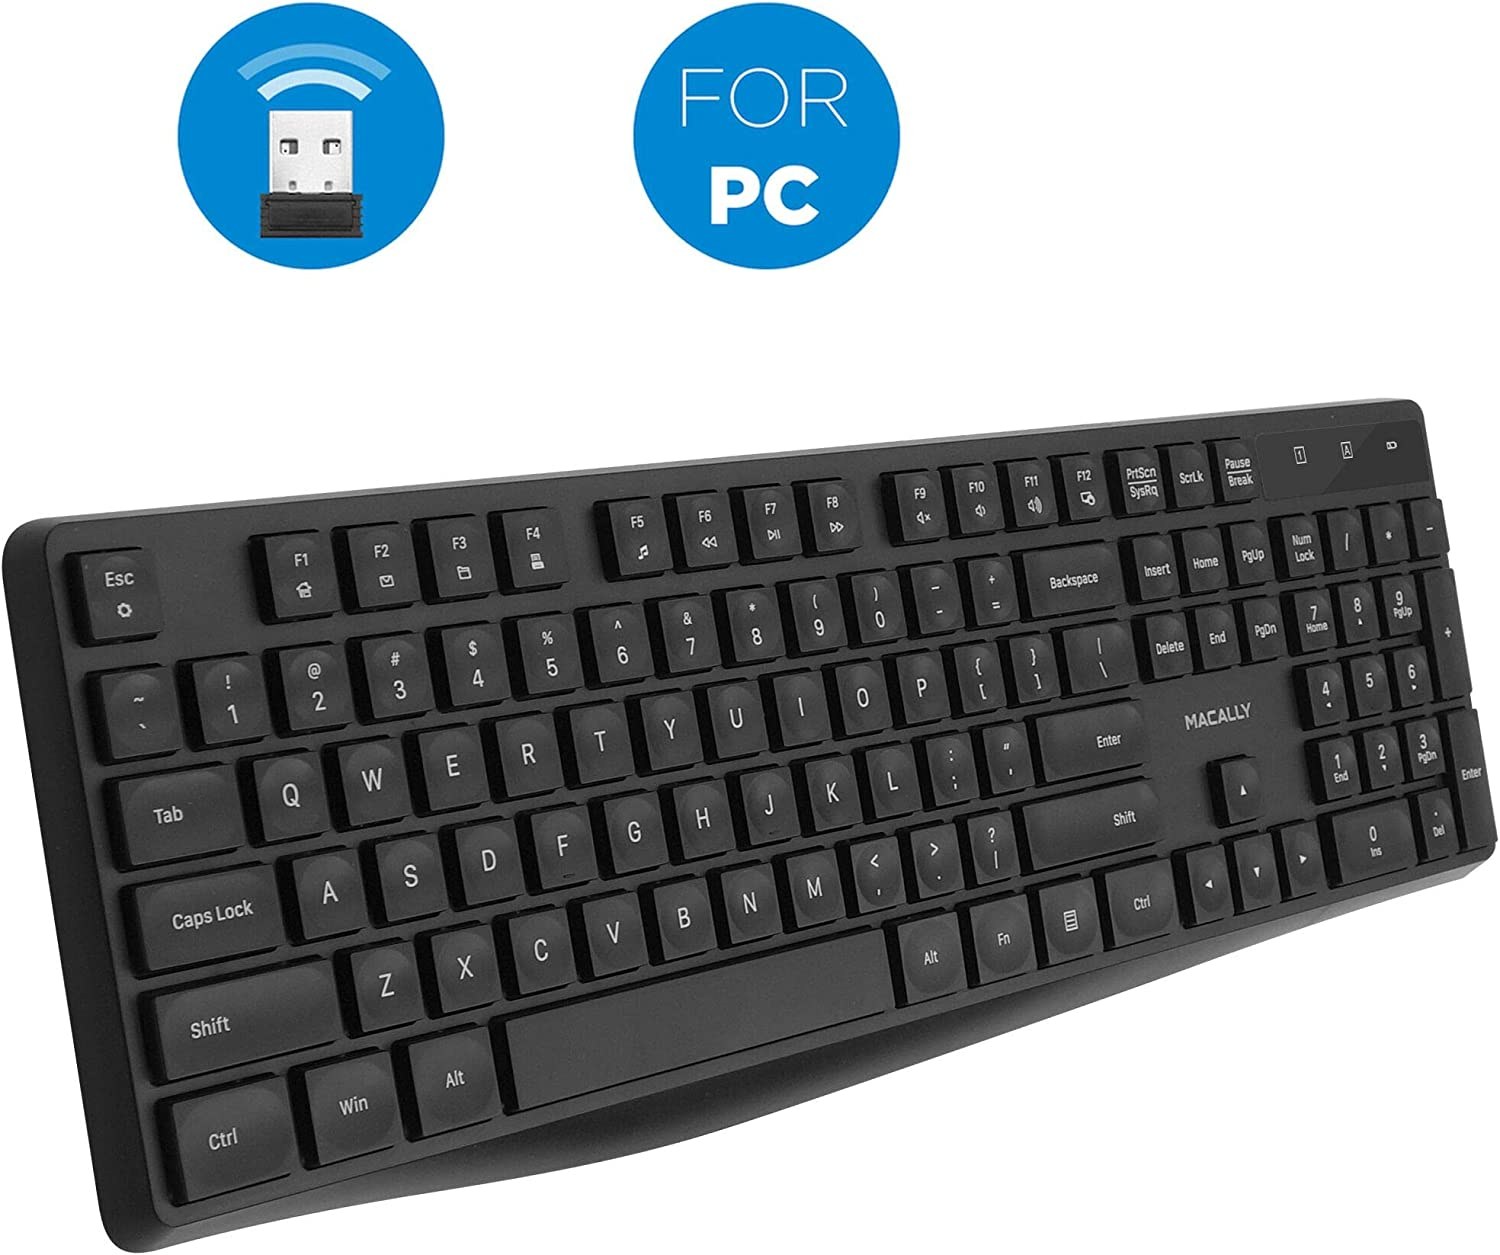 Macally 2.4G USB Wireless Keyboard for Laptop or Computer - Full Size Keyboard with Numeric Keypad & 13 Shortcut Keys - for Windows Devices with USB Port - Simple & Easy to Use PC Keyboard Wireless